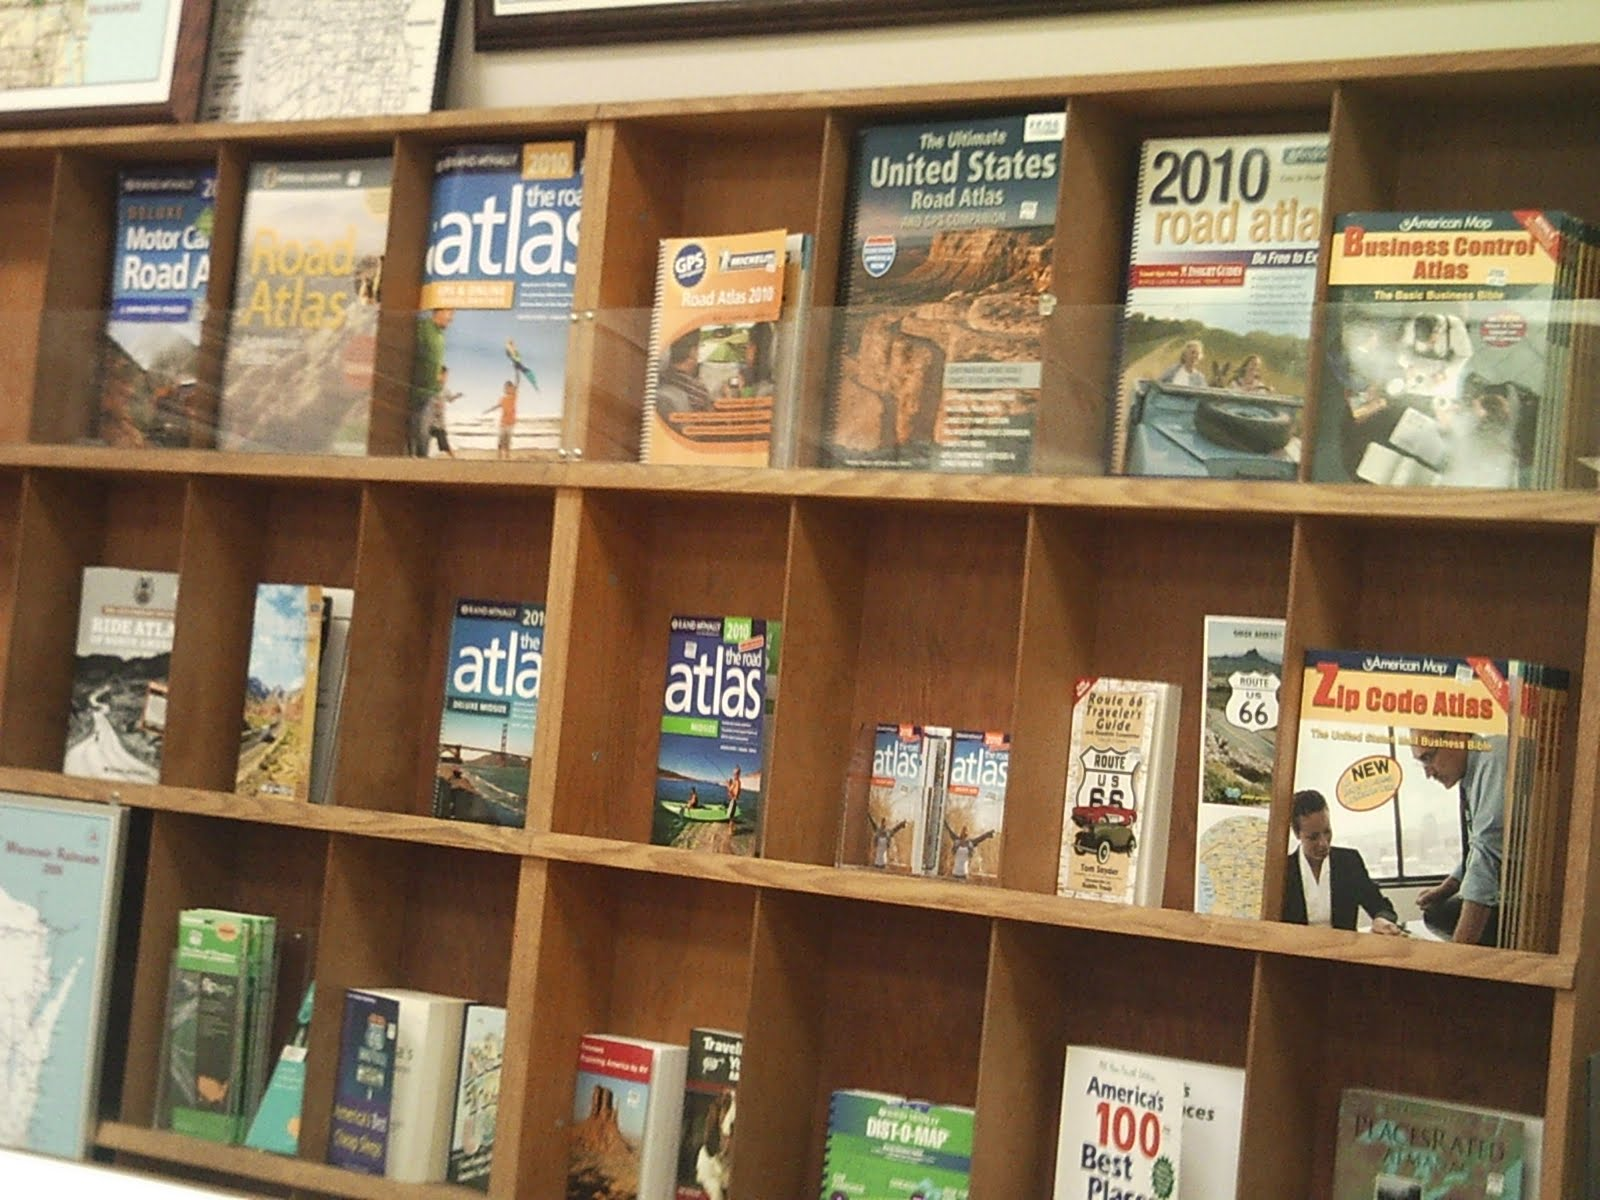 many different usa road atlases and we have maps for many cities all over the usa and canada as well as travel guides